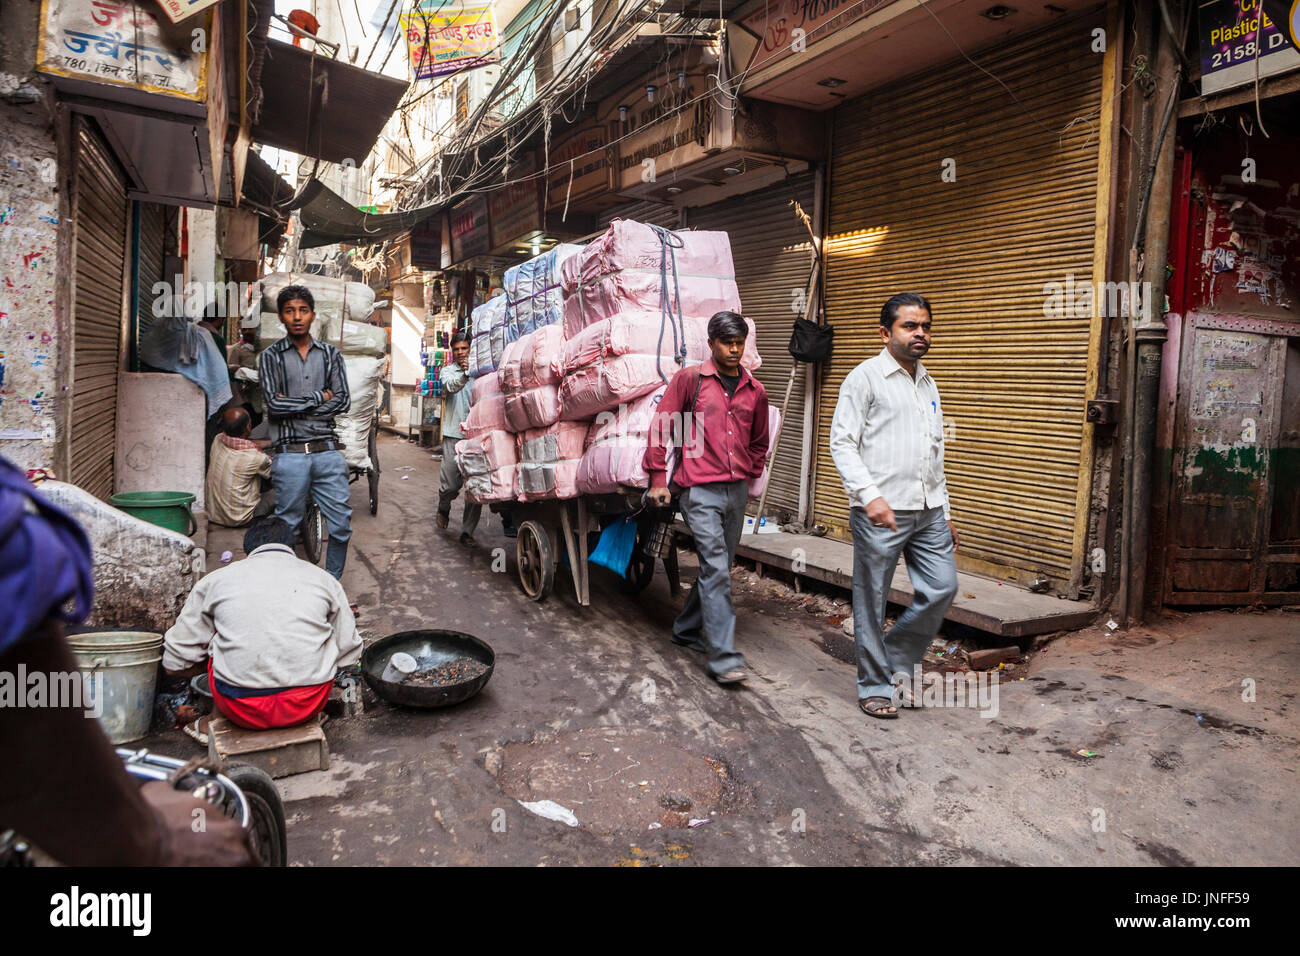 Une scène de rue à Chandni Chowk, Old Delhi, Inde. Photo Stock